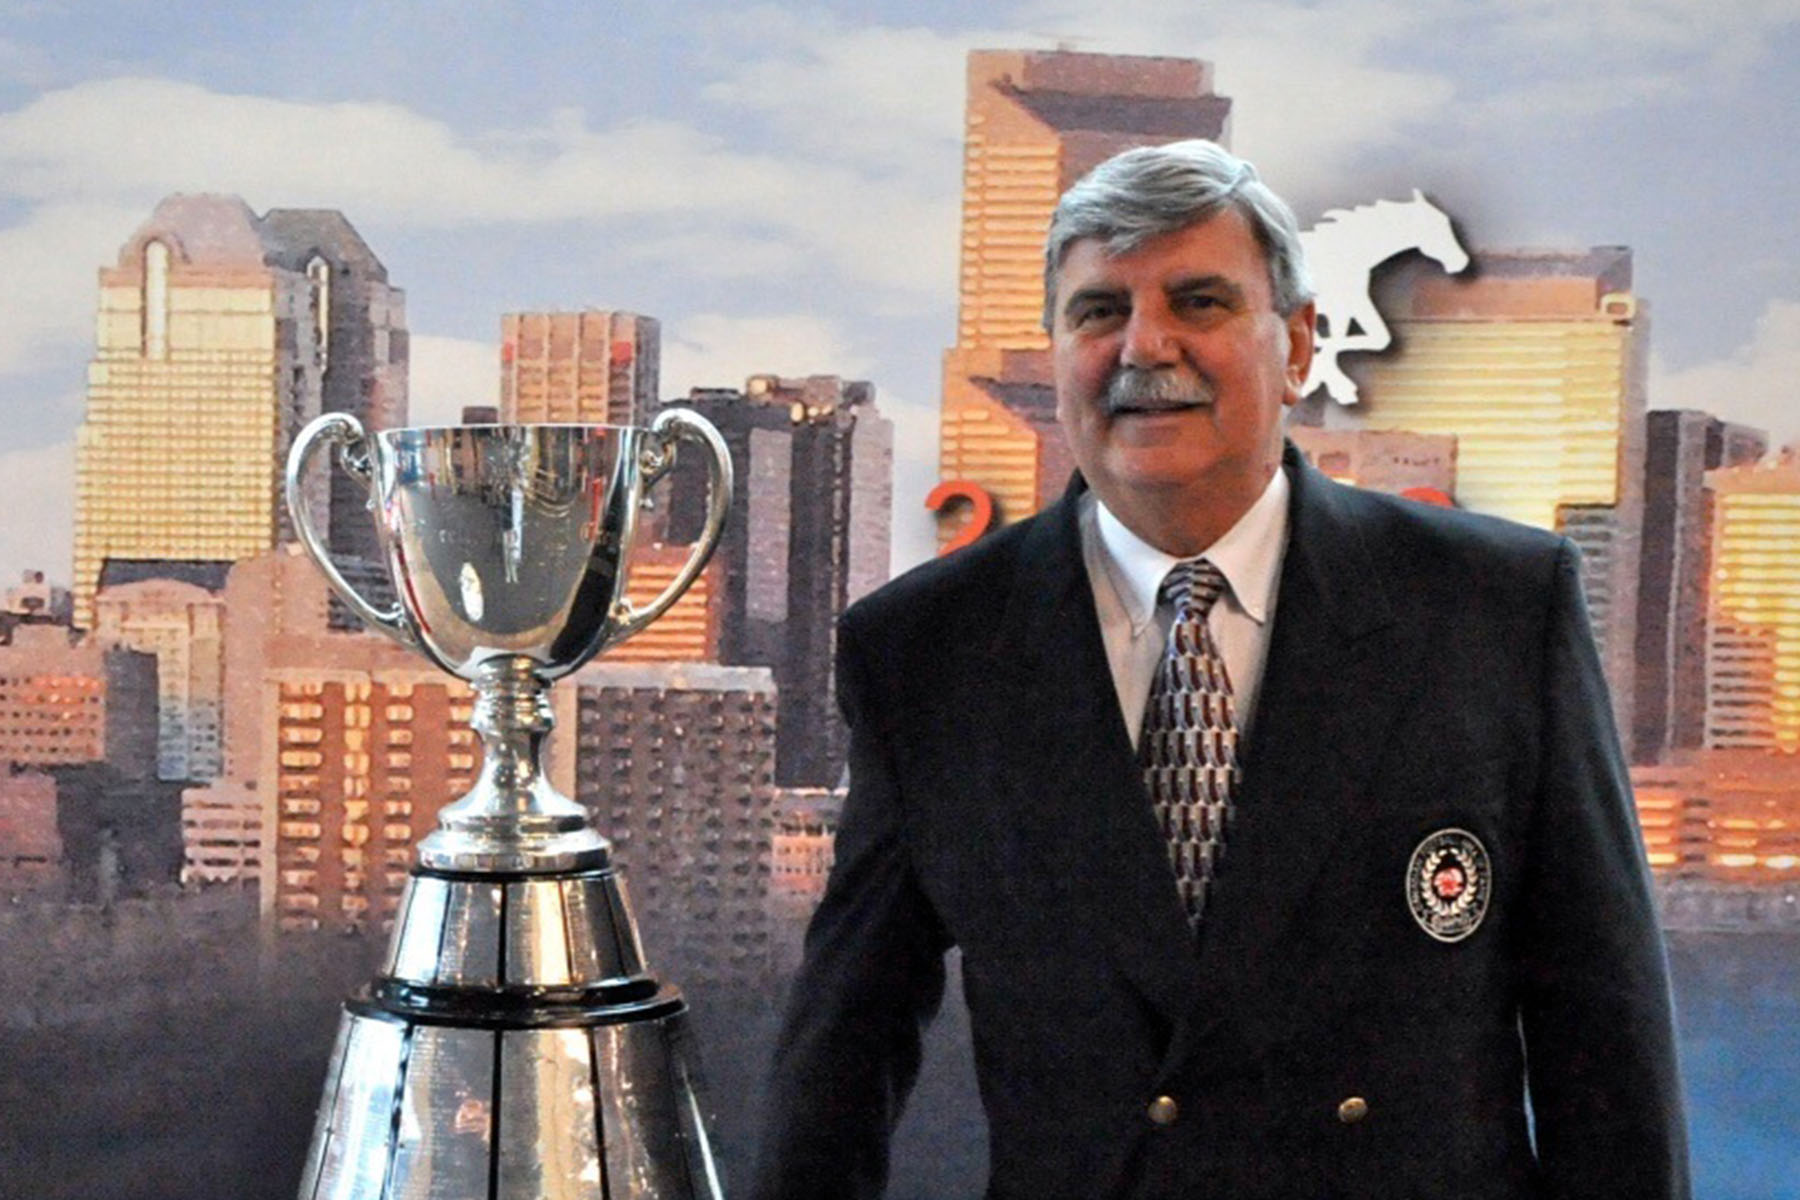 Dan Maloney with the Grey Cup